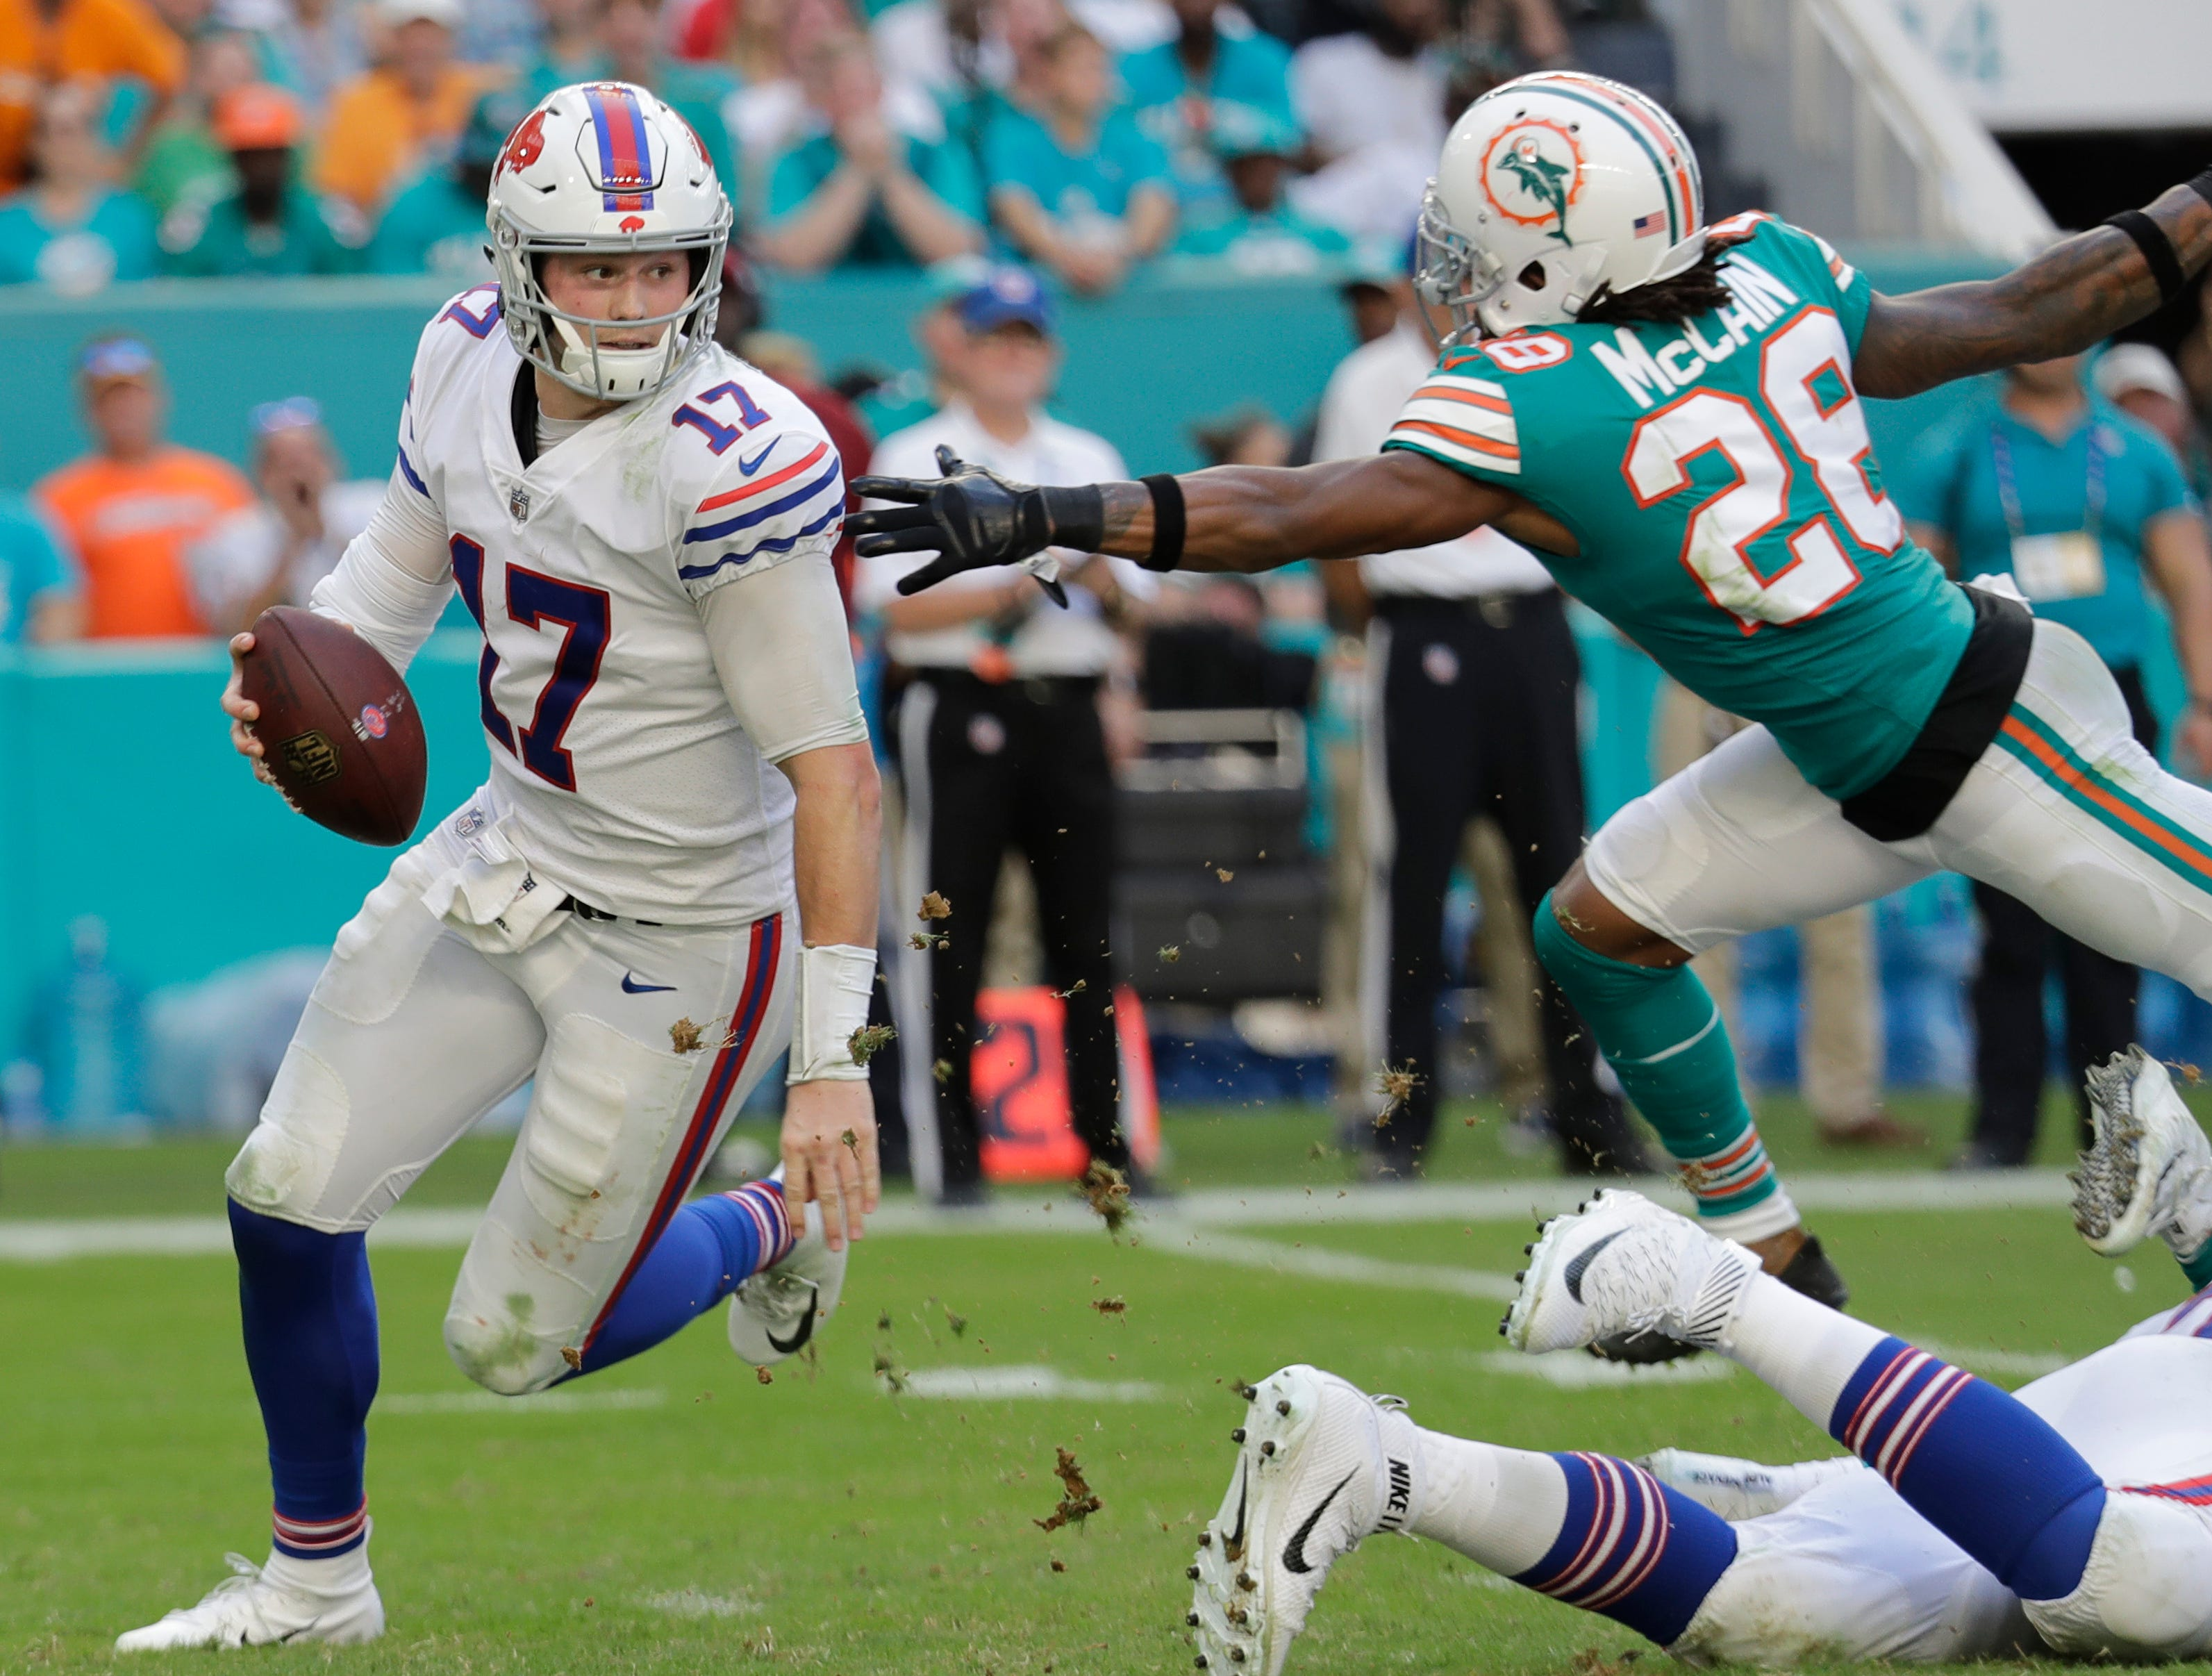 Buffalo Bills quarterback Josh Allen (17) avoids a tackle by Miami Dolphins cornerback Bobby McCain (28), during the second half of an NFL football game, Sunday, Dec. 2, 2018, in Miami Gardens, Fla(AP Photo/Lynne Sladky)